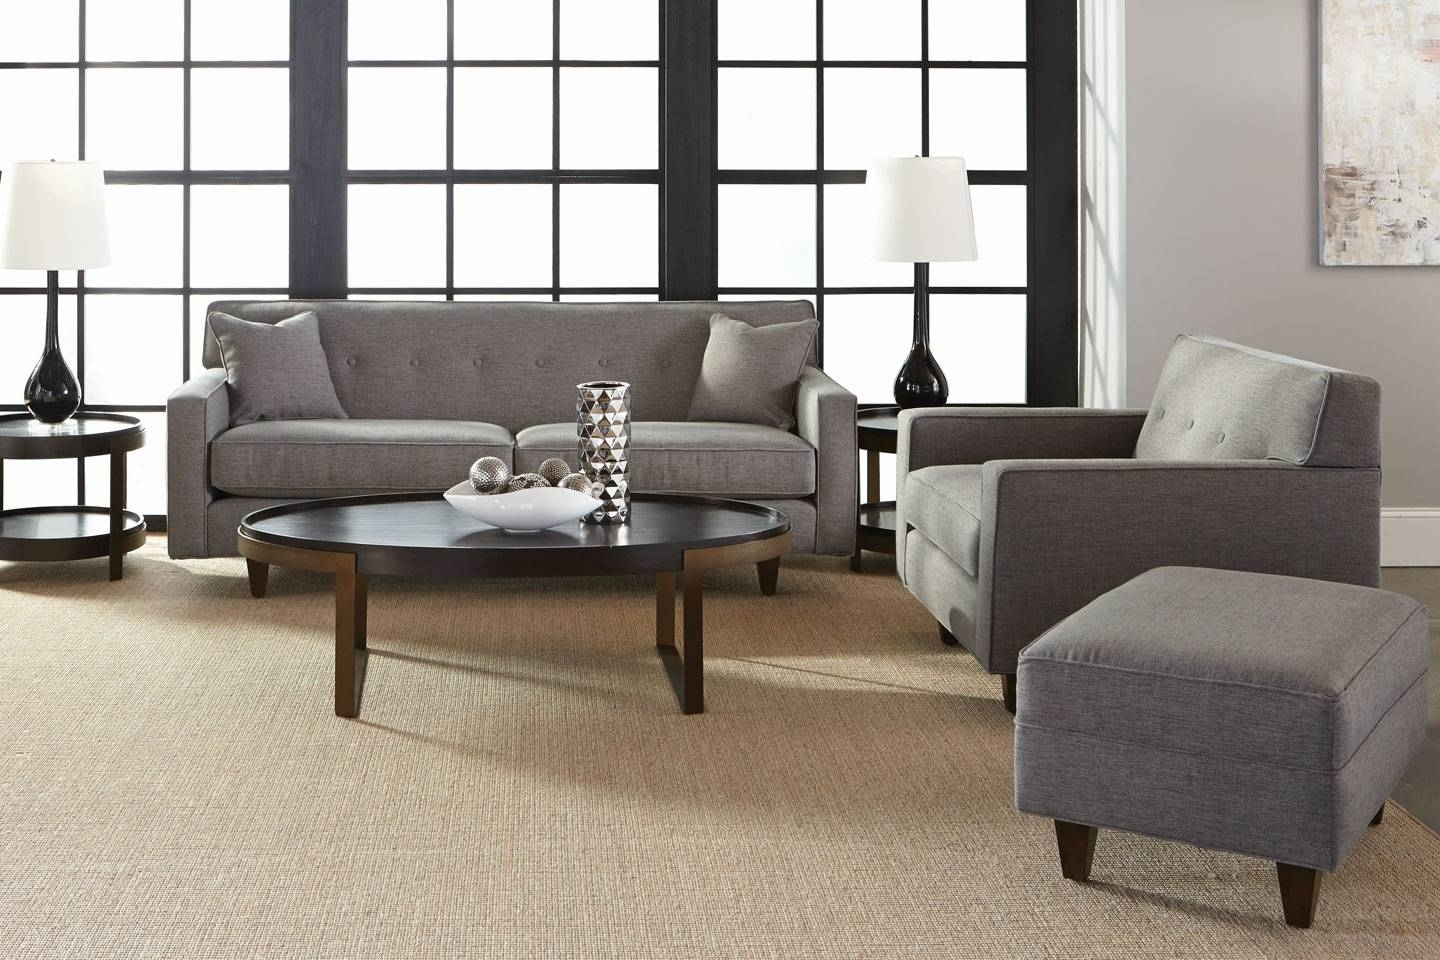 """Collection - Margo """"quick Ship"""" 3-Piece Sofa, Chair, Ottoman Set pertaining to Sofa Chair and Ottoman (Image 1 of 15)"""